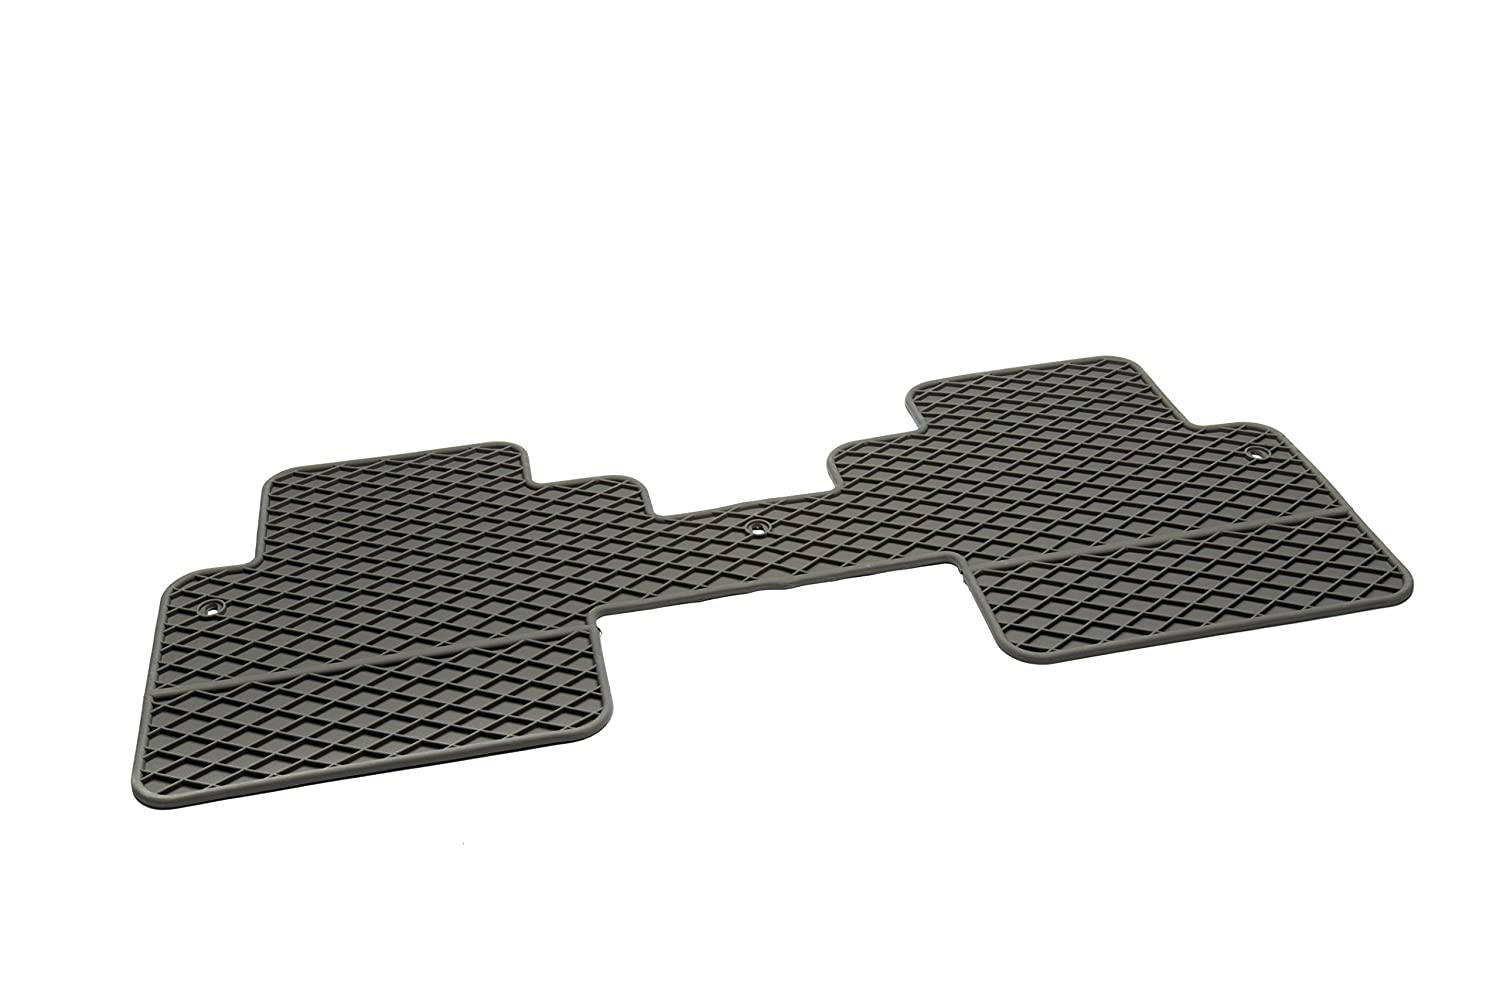 GM Accessories 22890469 Second Row 1-Piece All-Weather Floor Mat in Titanium with Deep Rib